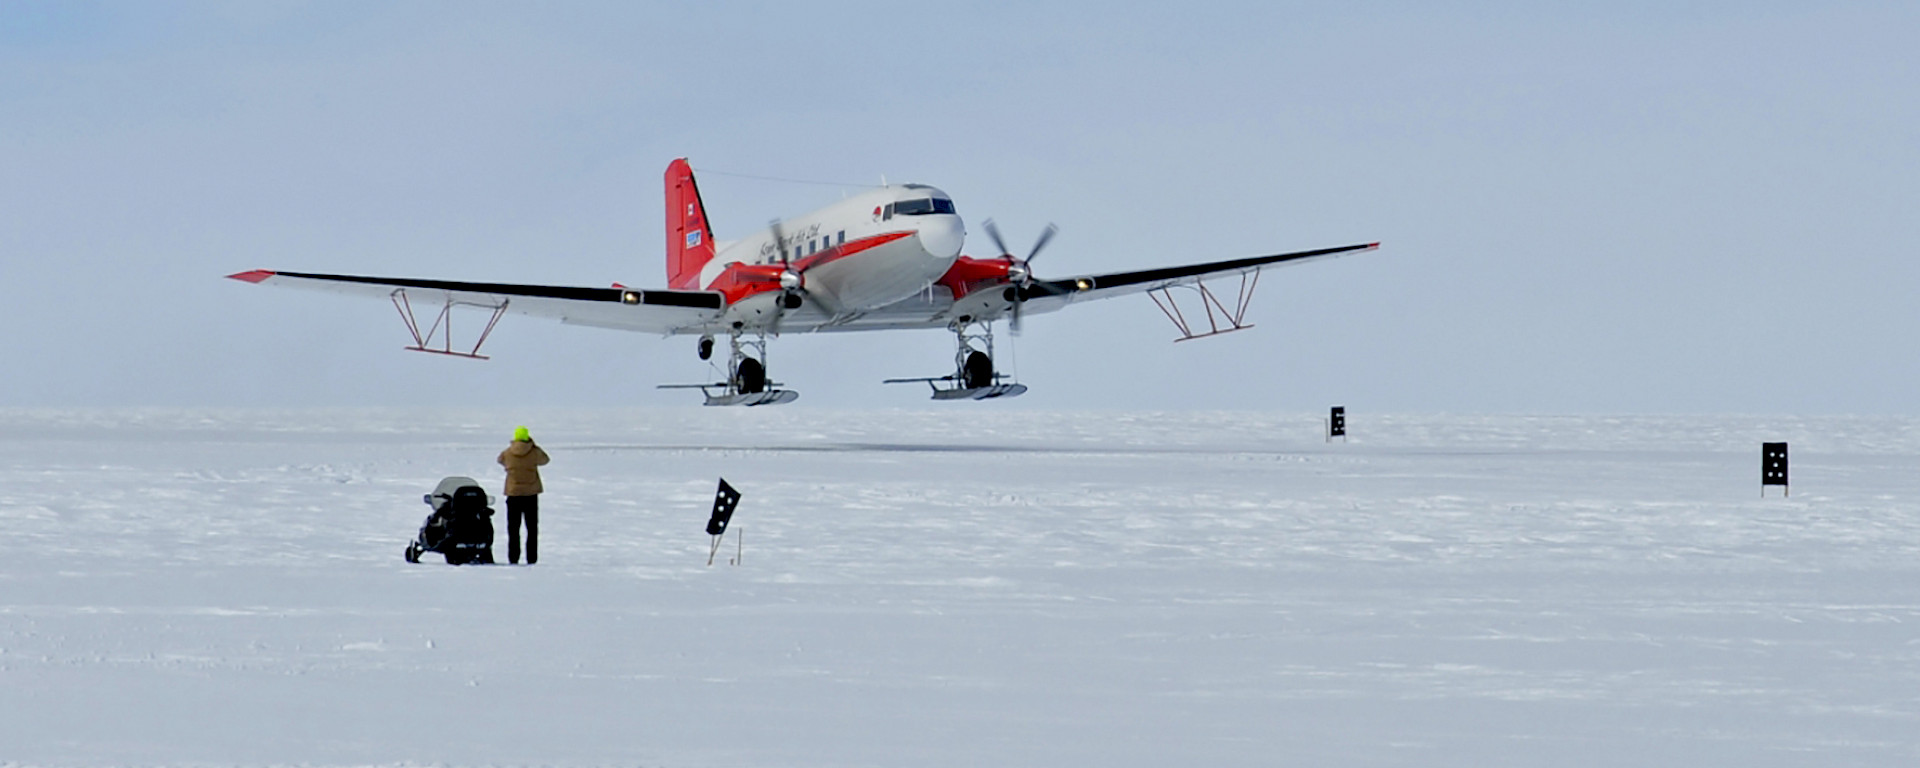 The 72 year old Basler BT-67 aircraft with its wing-mounted, ice penetrating radar antennae.